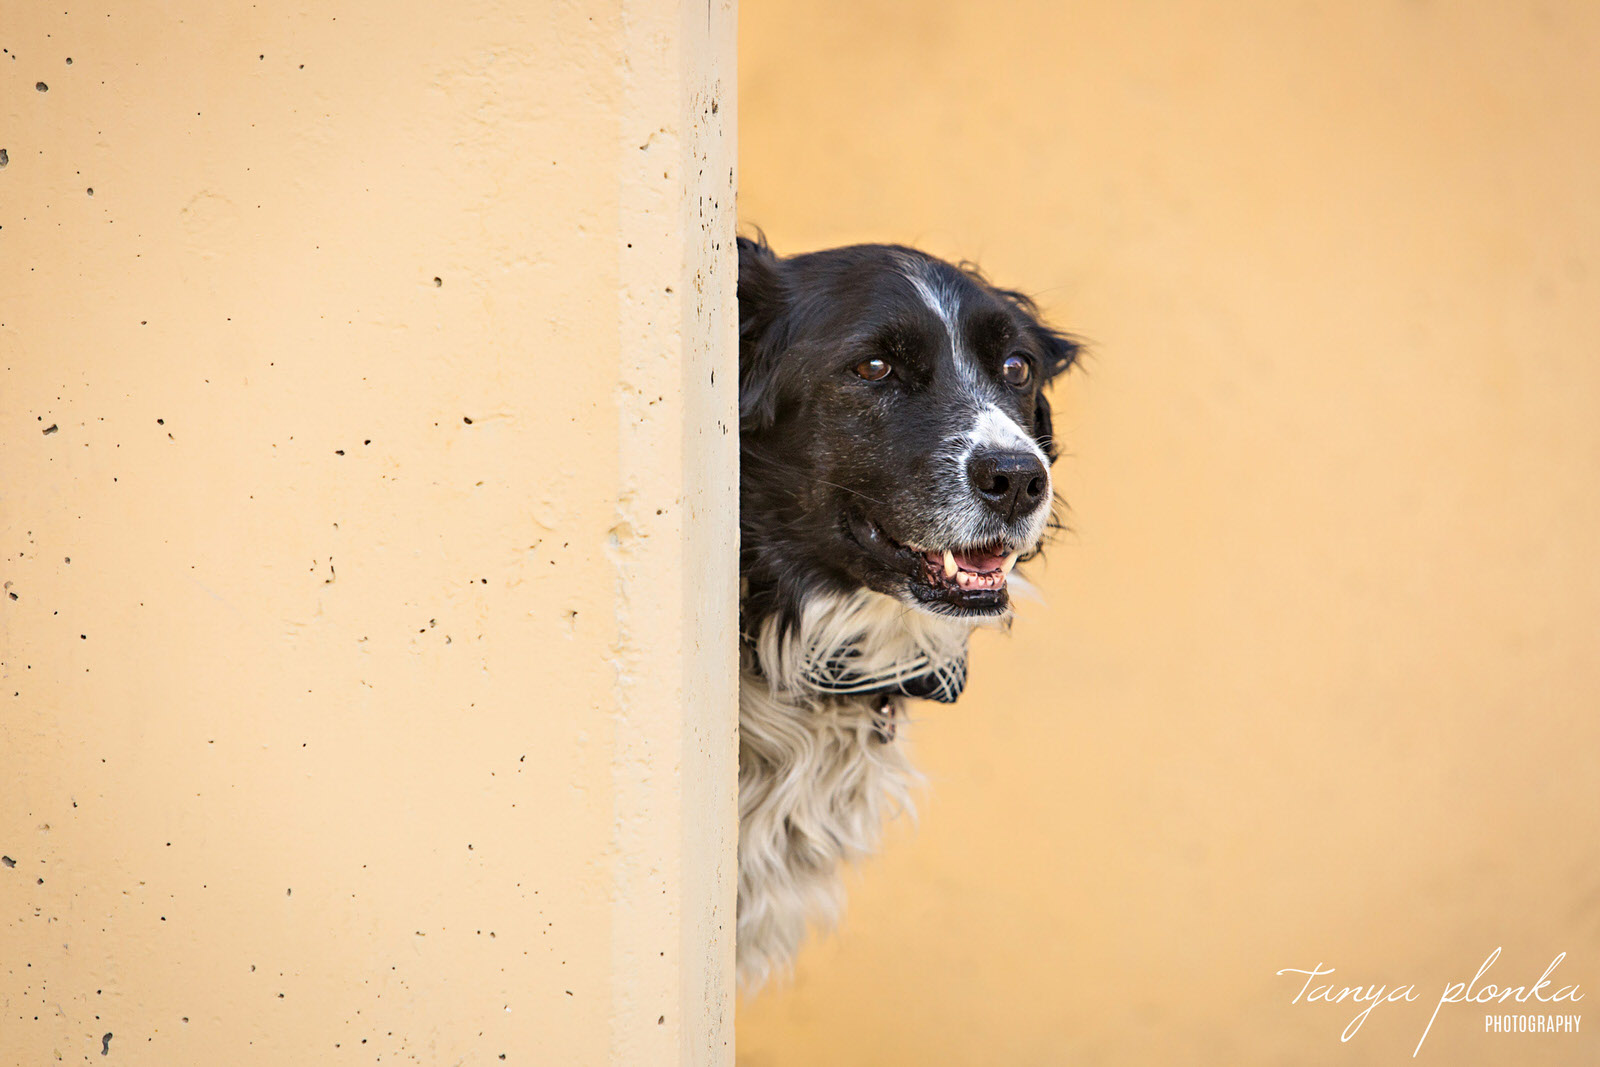 black and white dog peeks around yellow wall